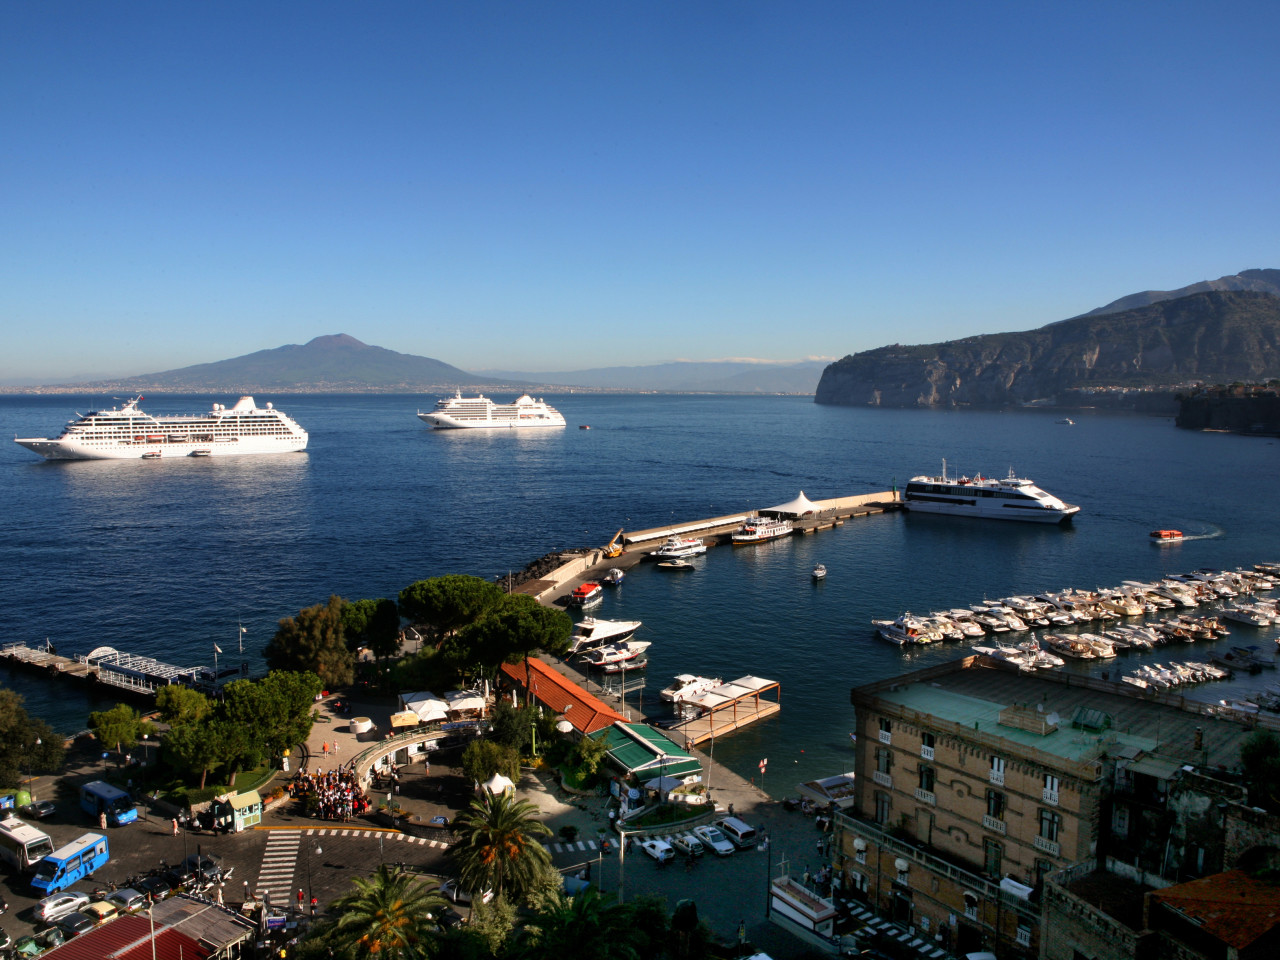 Shore excursions from Sorrento port|Star cars luxury tours Amalfi coast